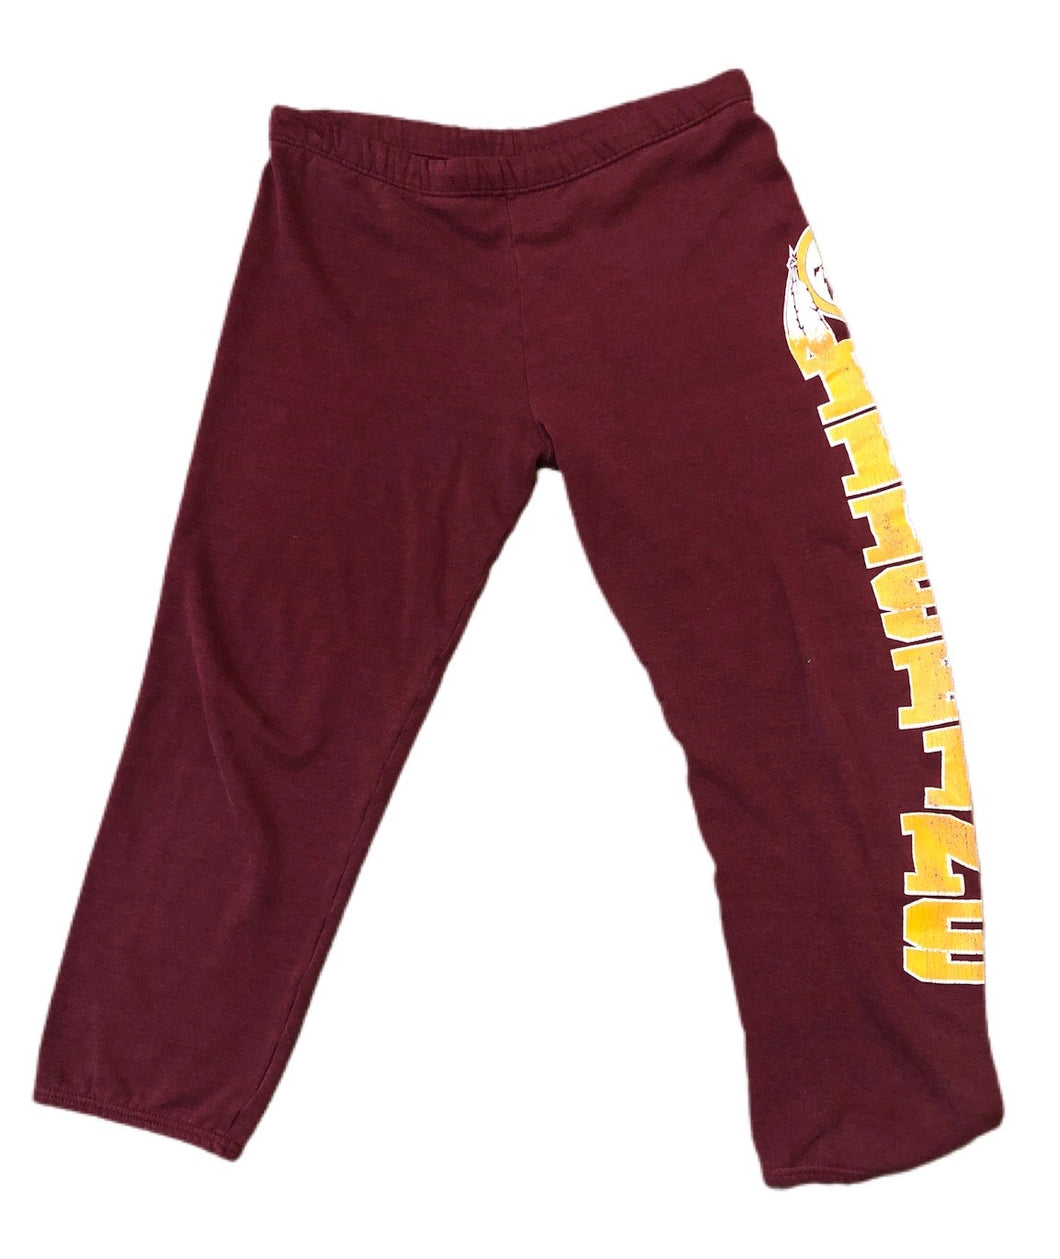 Vintage WASHINGTON REDSKINS LOGO 7 SWEATPANTS SZ L 50/50 NFL SUPREME SUPER BOWL